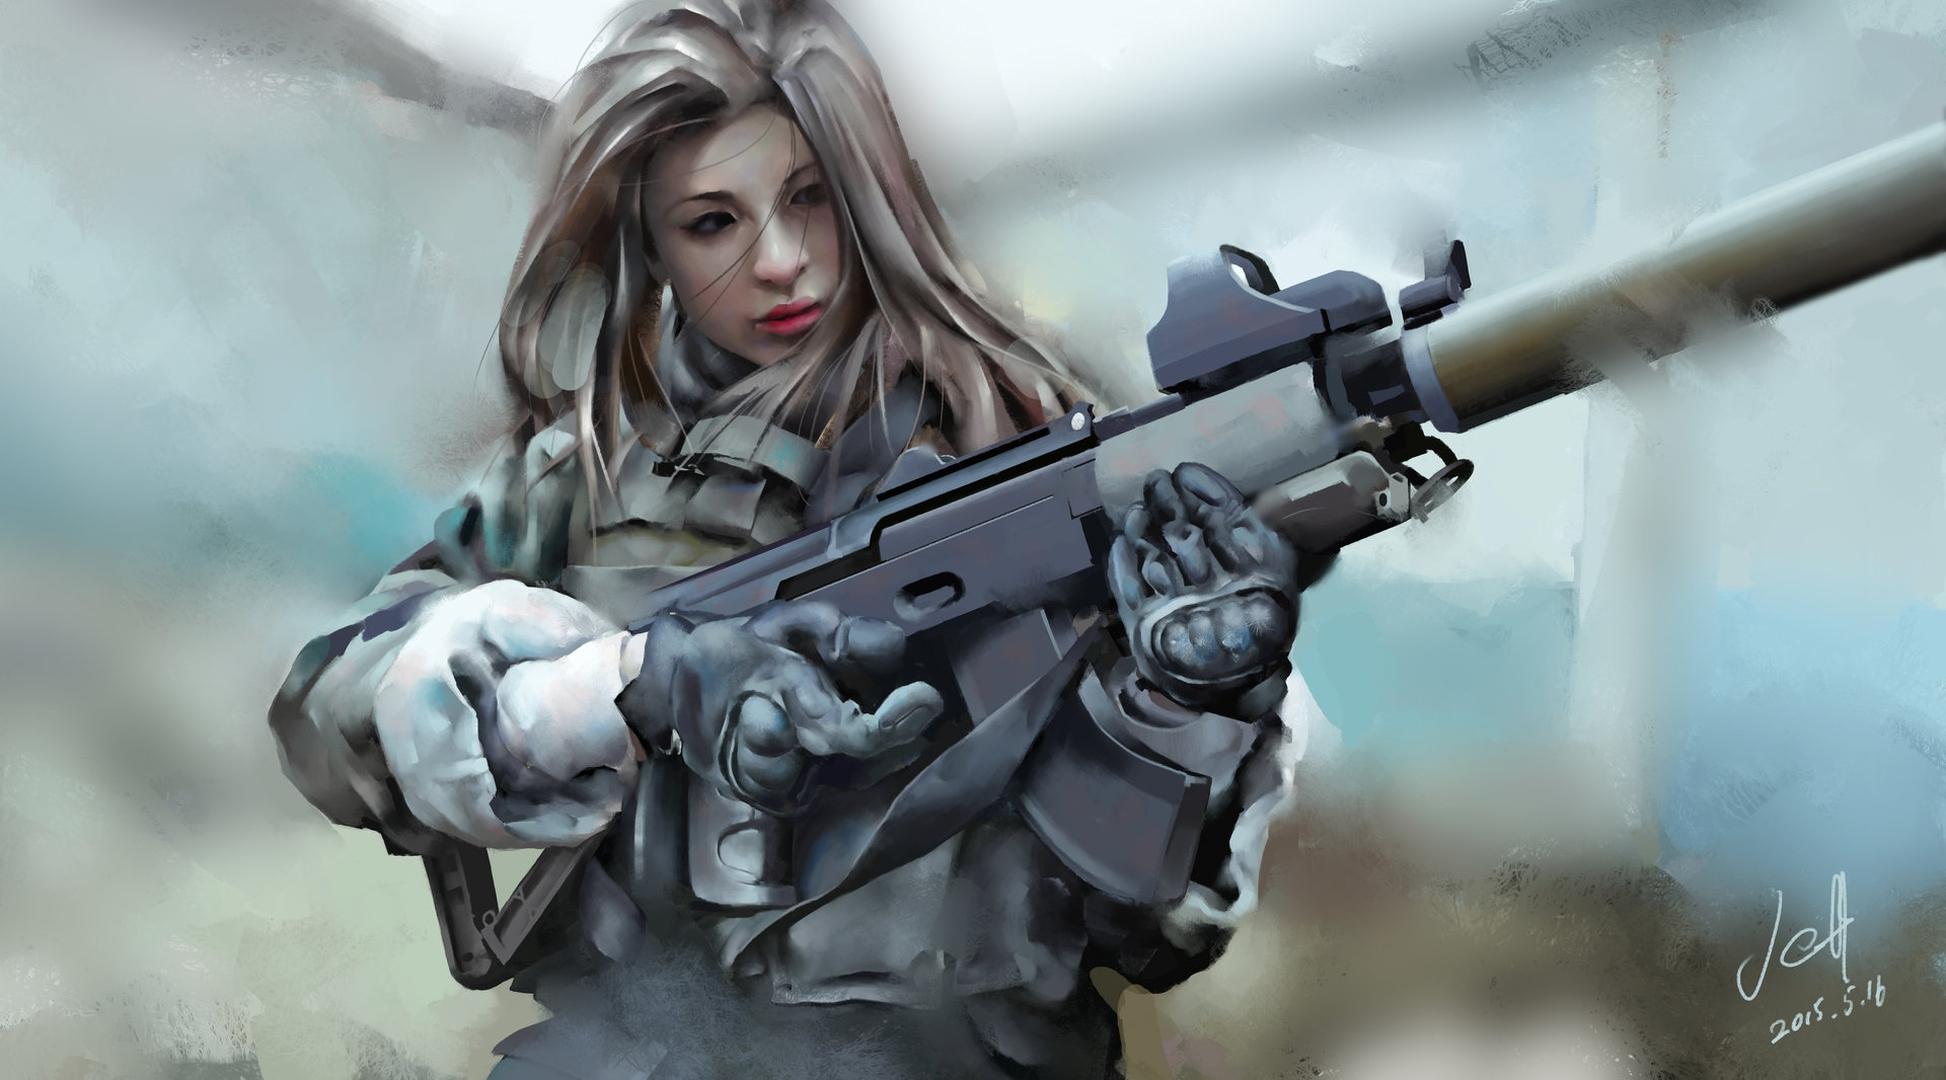 from Giovanni sexy naked girls with guns hd wallpapers